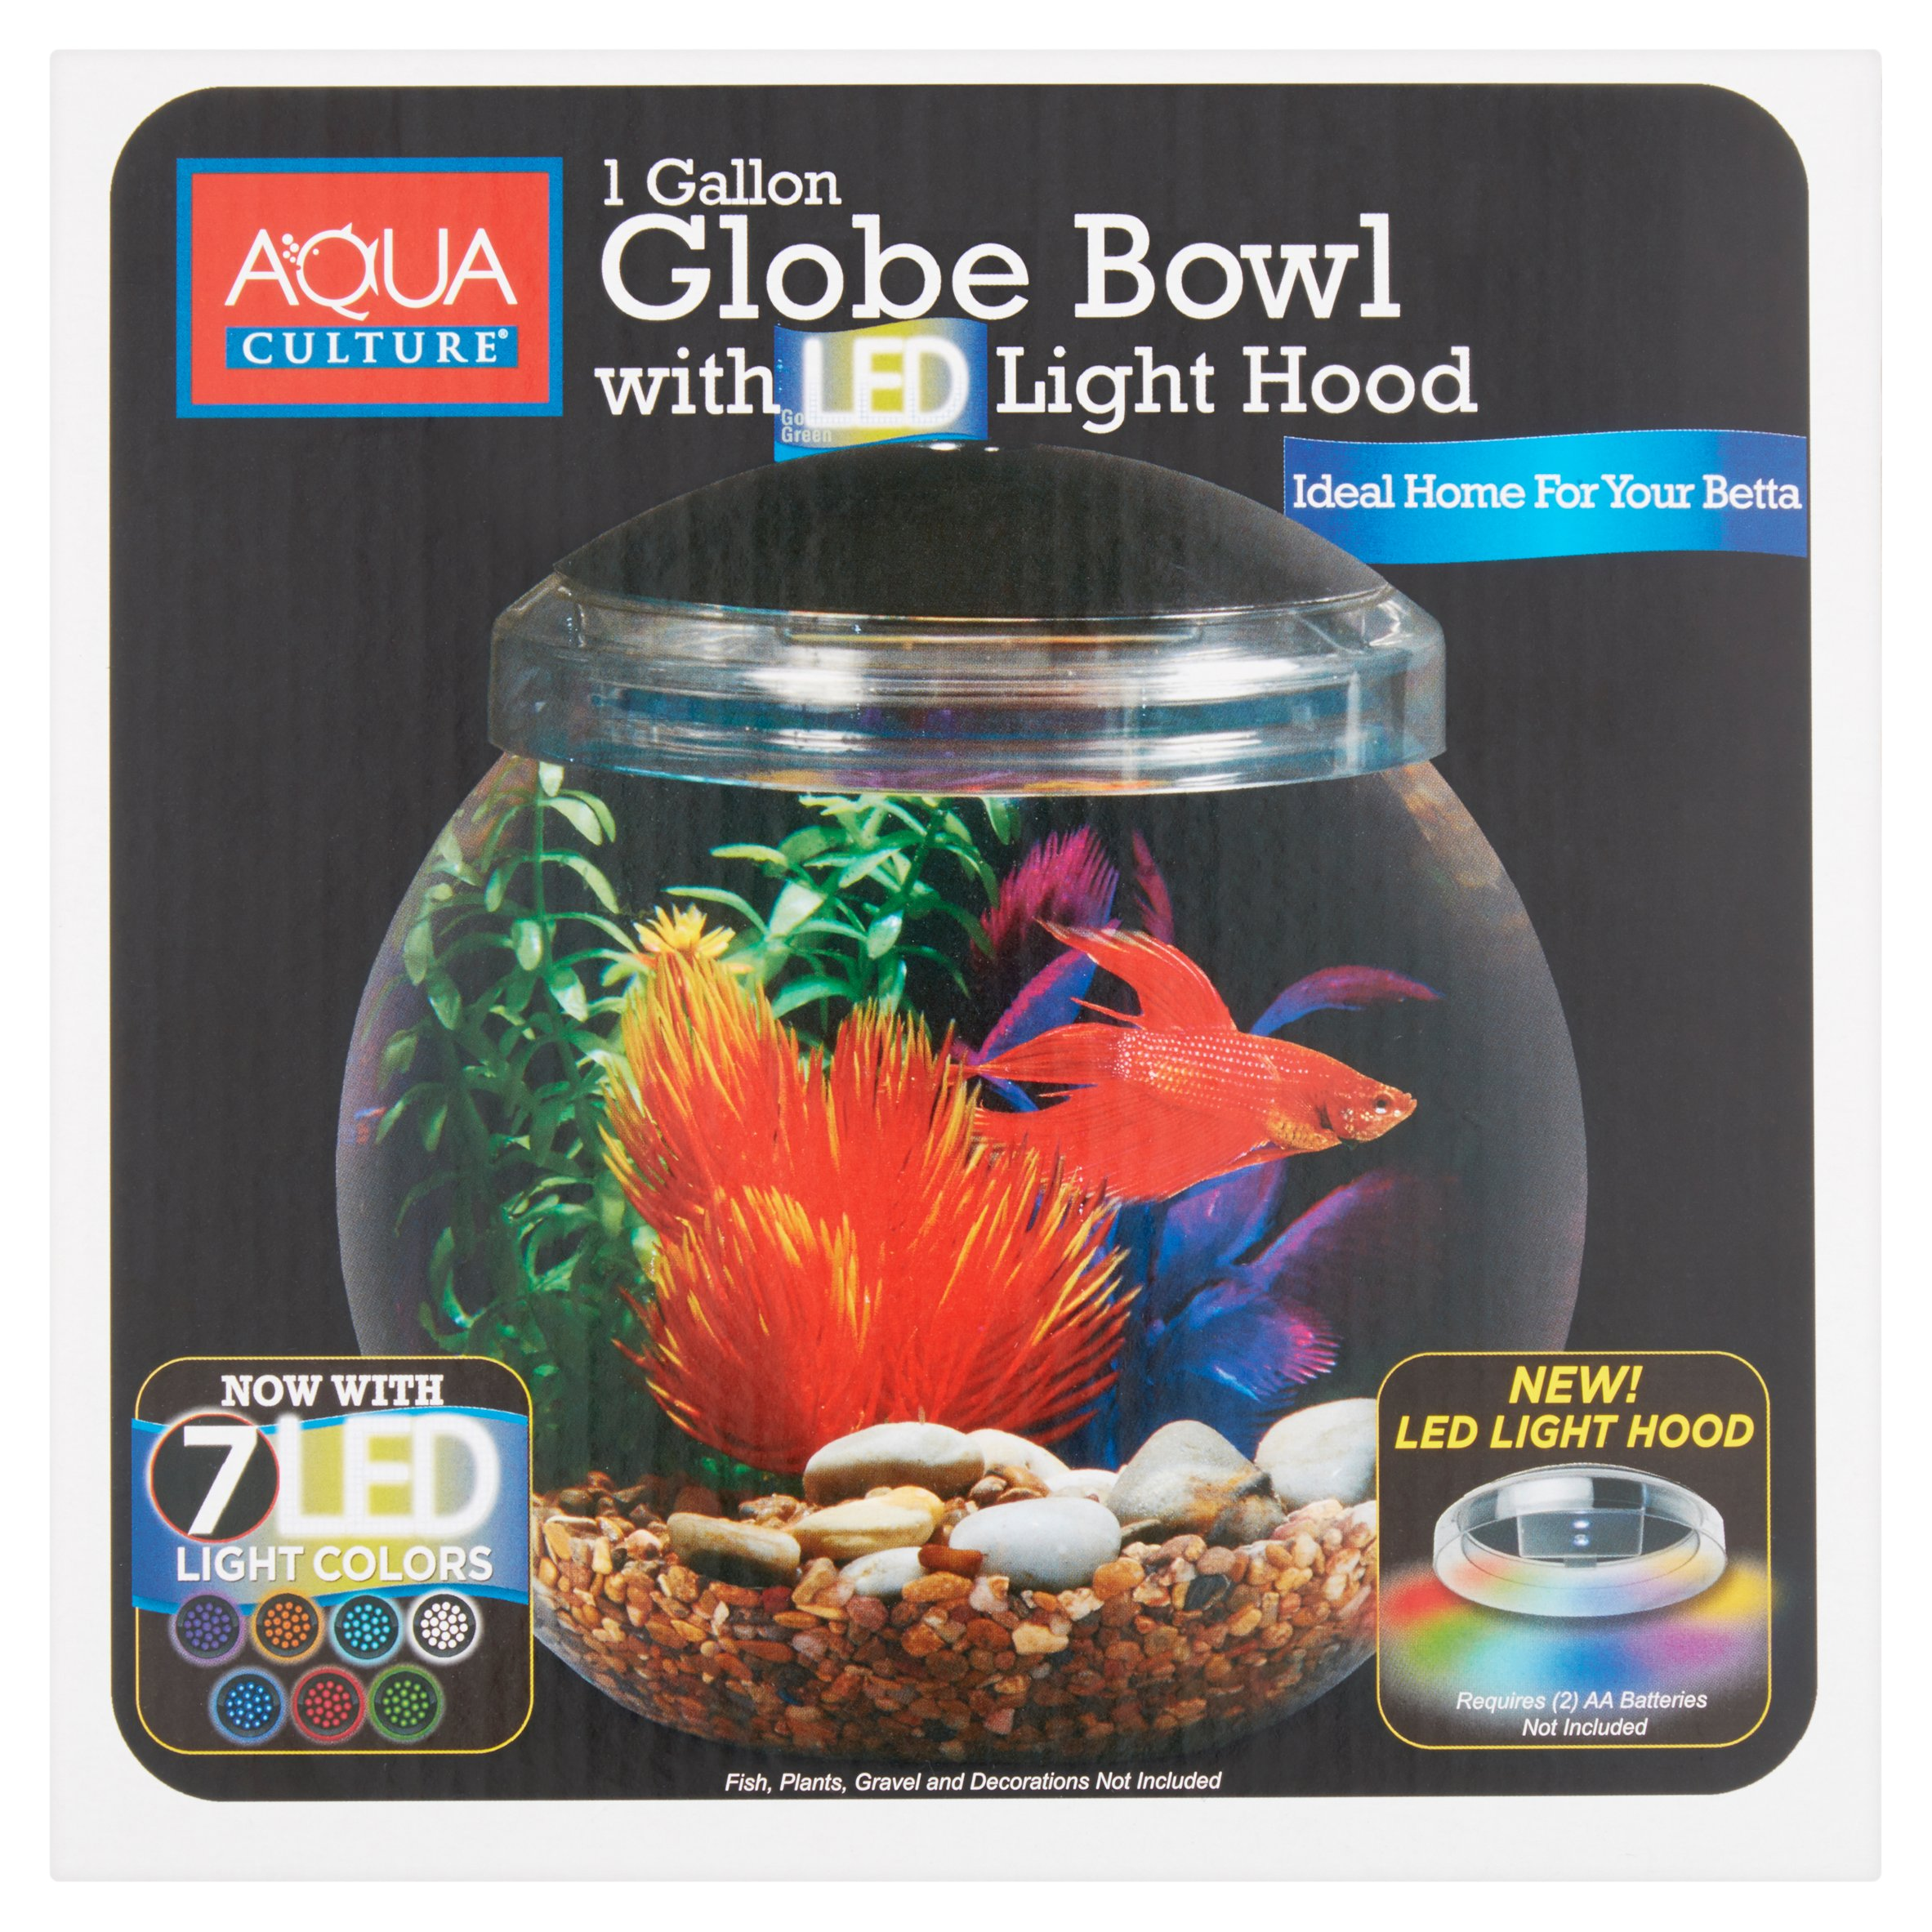 Aqua Culture 1 Gallon Betta Aquarium